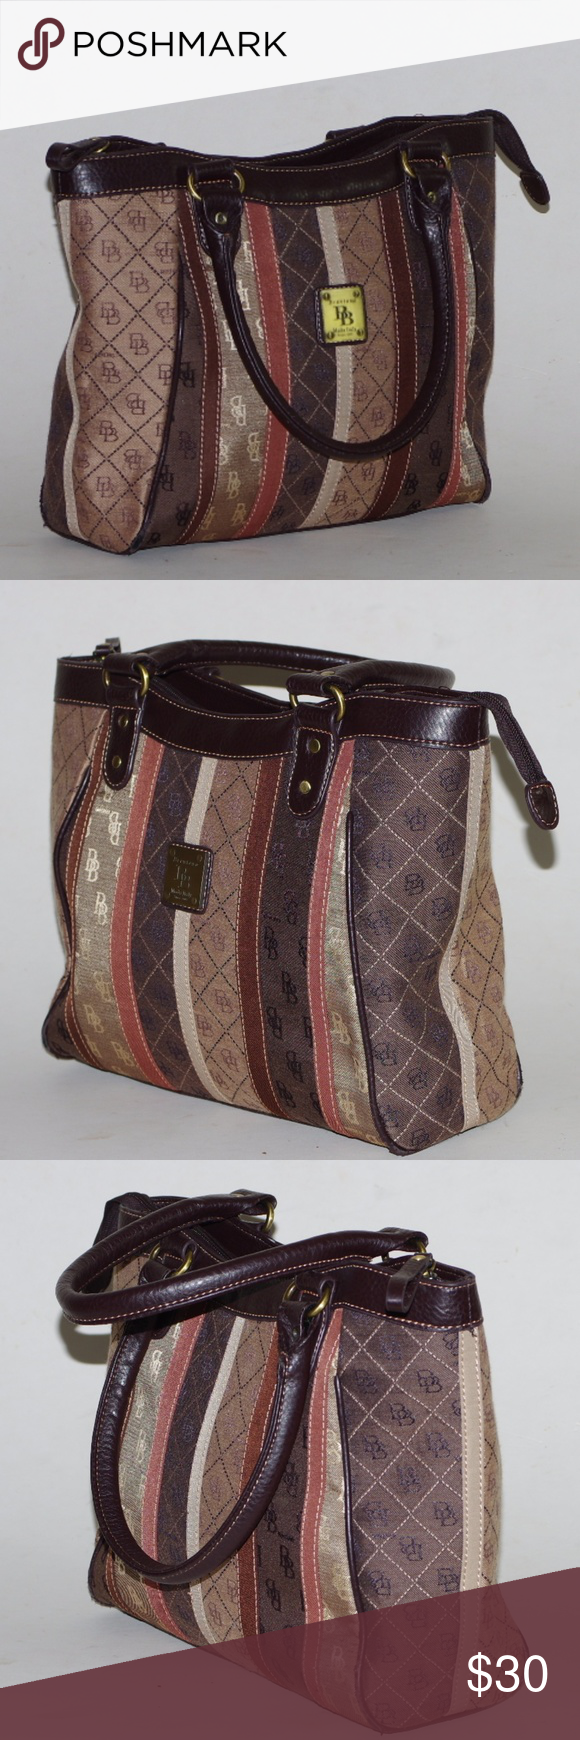 Nwot Signature Monogram Handbag Brown Satchel L By Brentano Moda Italy Large Textile New Without Tags Or Packaging